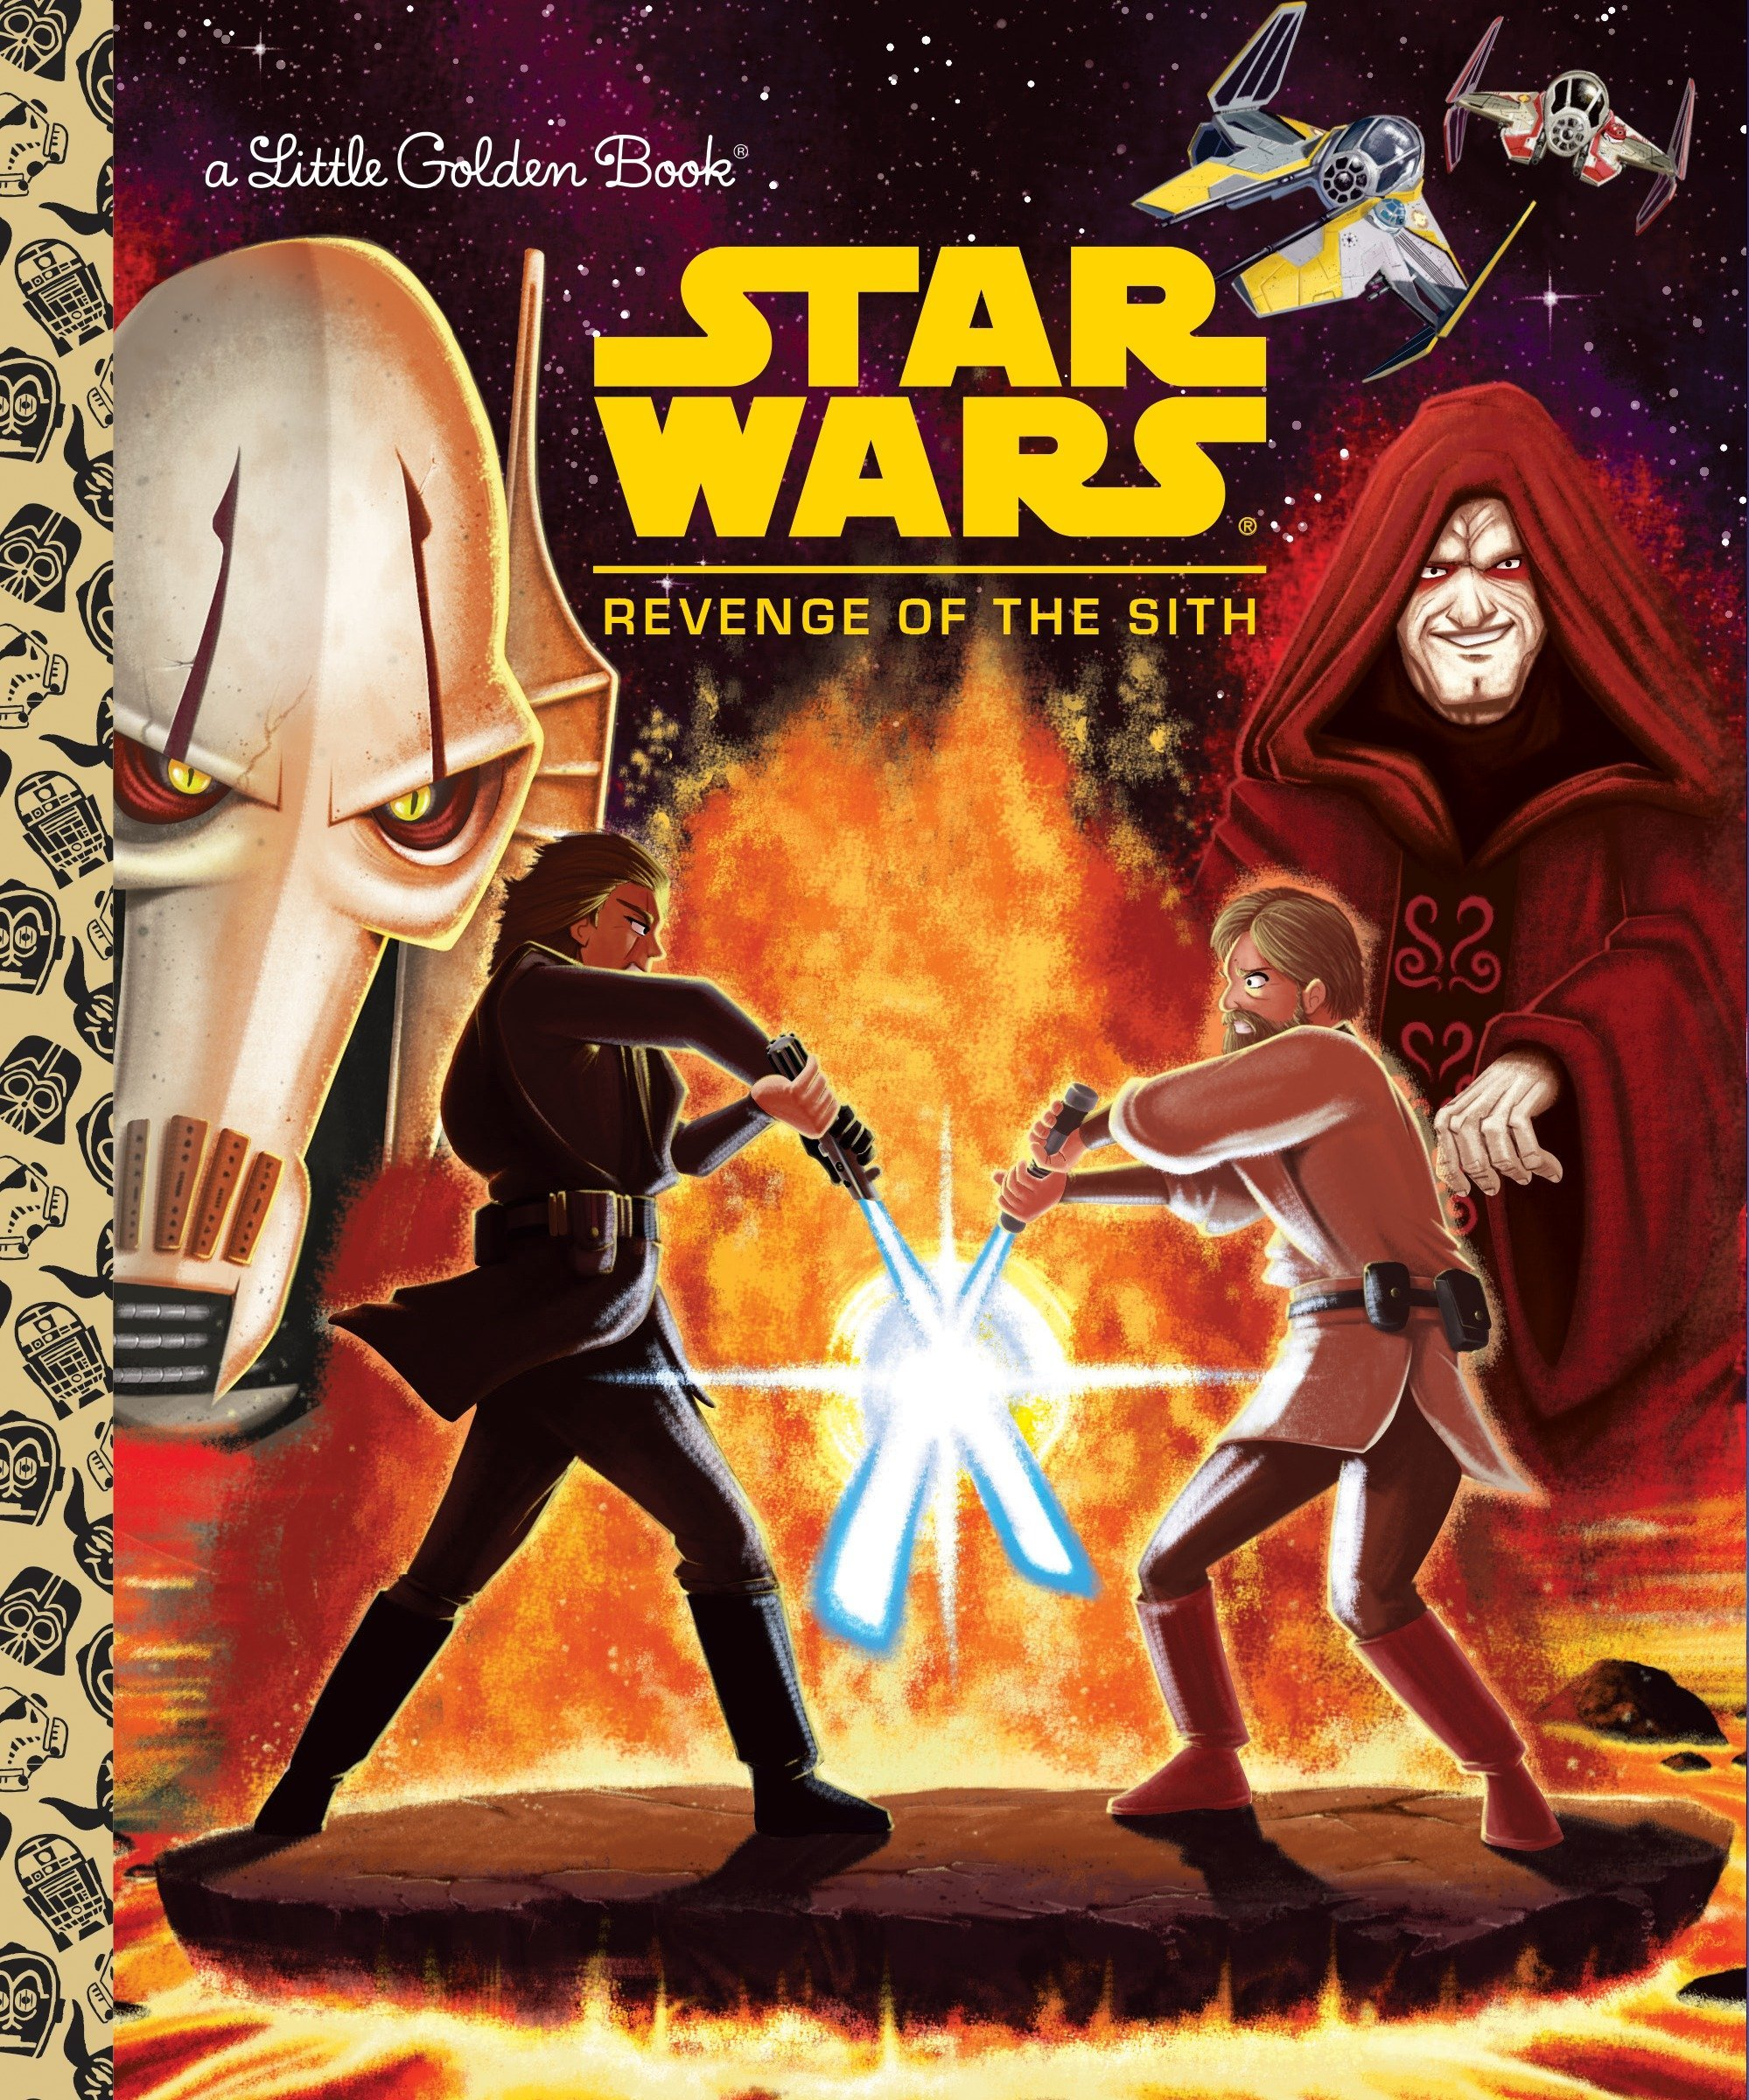 Star Wars: Revenge of the Sith (Star Wars) (Little Golden Book)